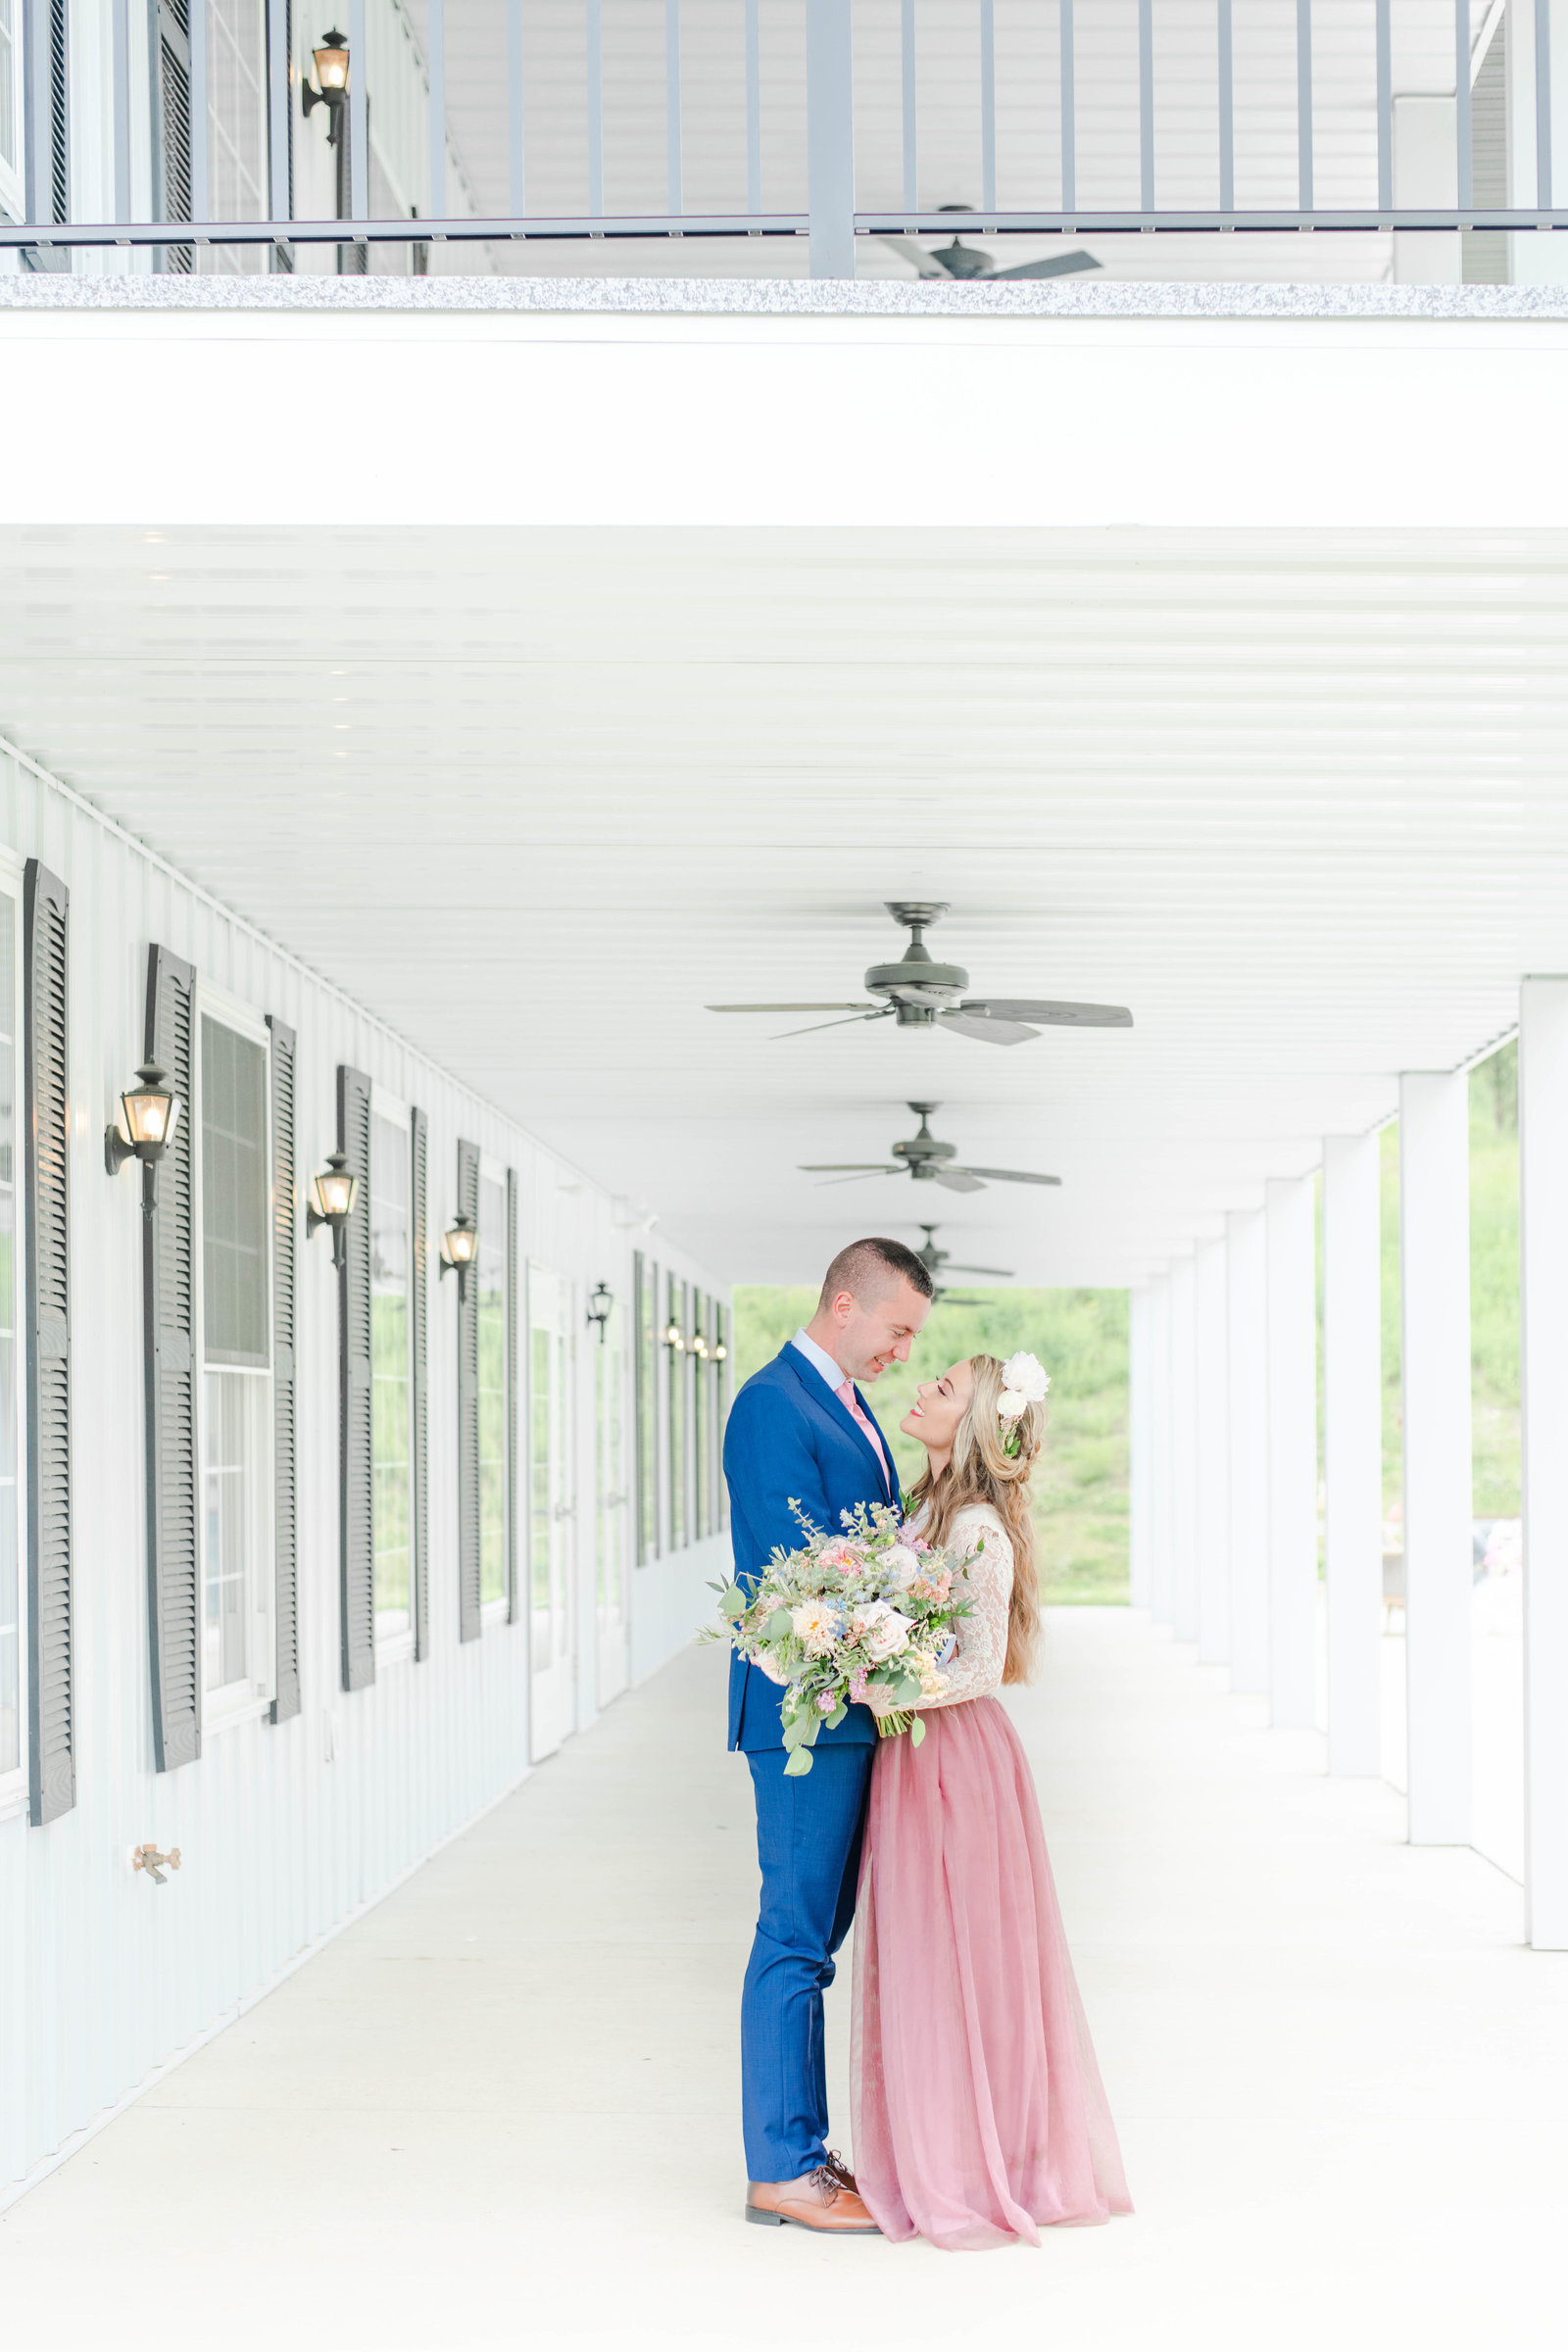 Cassidy Alane Photography-Rosewood Manor - Dayton Ohio - Wedding-Engagement Photography61